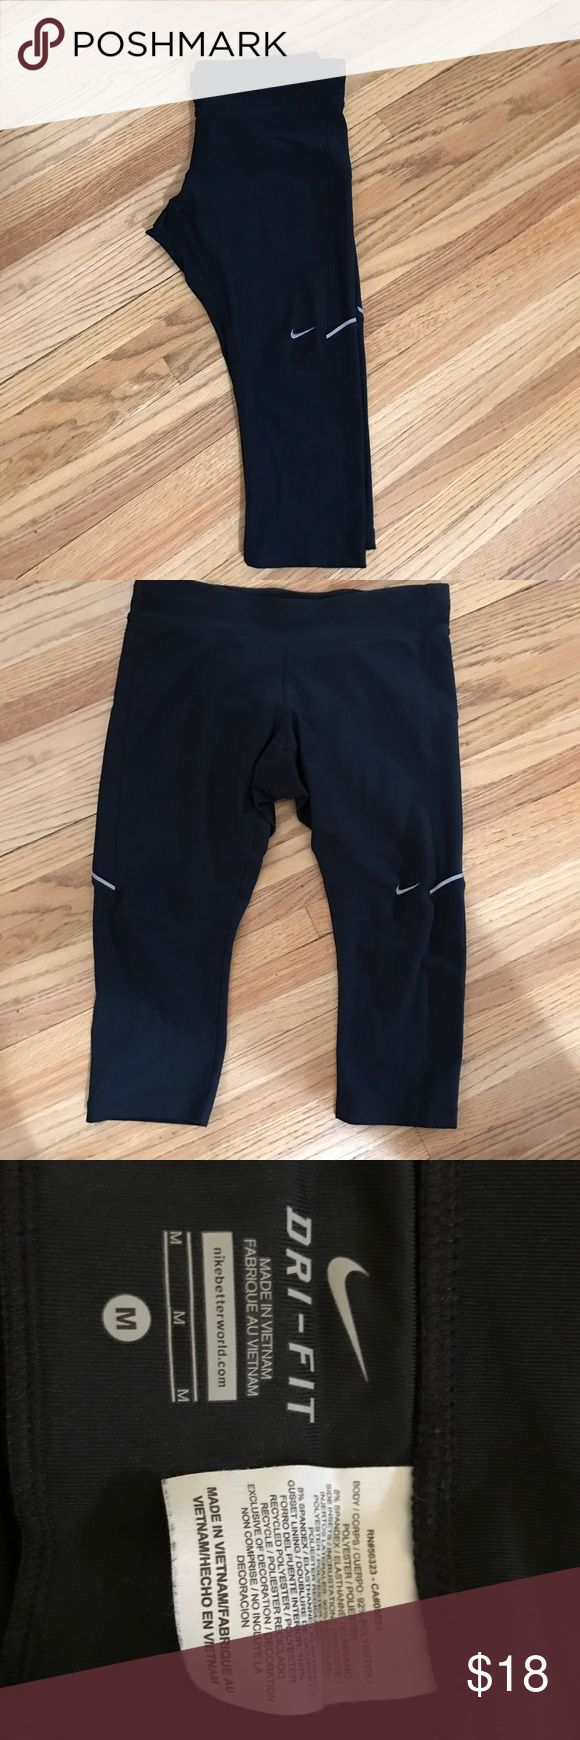 Nike dry fit Capri running tights size medium Nike dry fit Capri running tights size medium. Come a few inches under knees for length. Very good condition. Back zip pocket on waist band Nike Pants